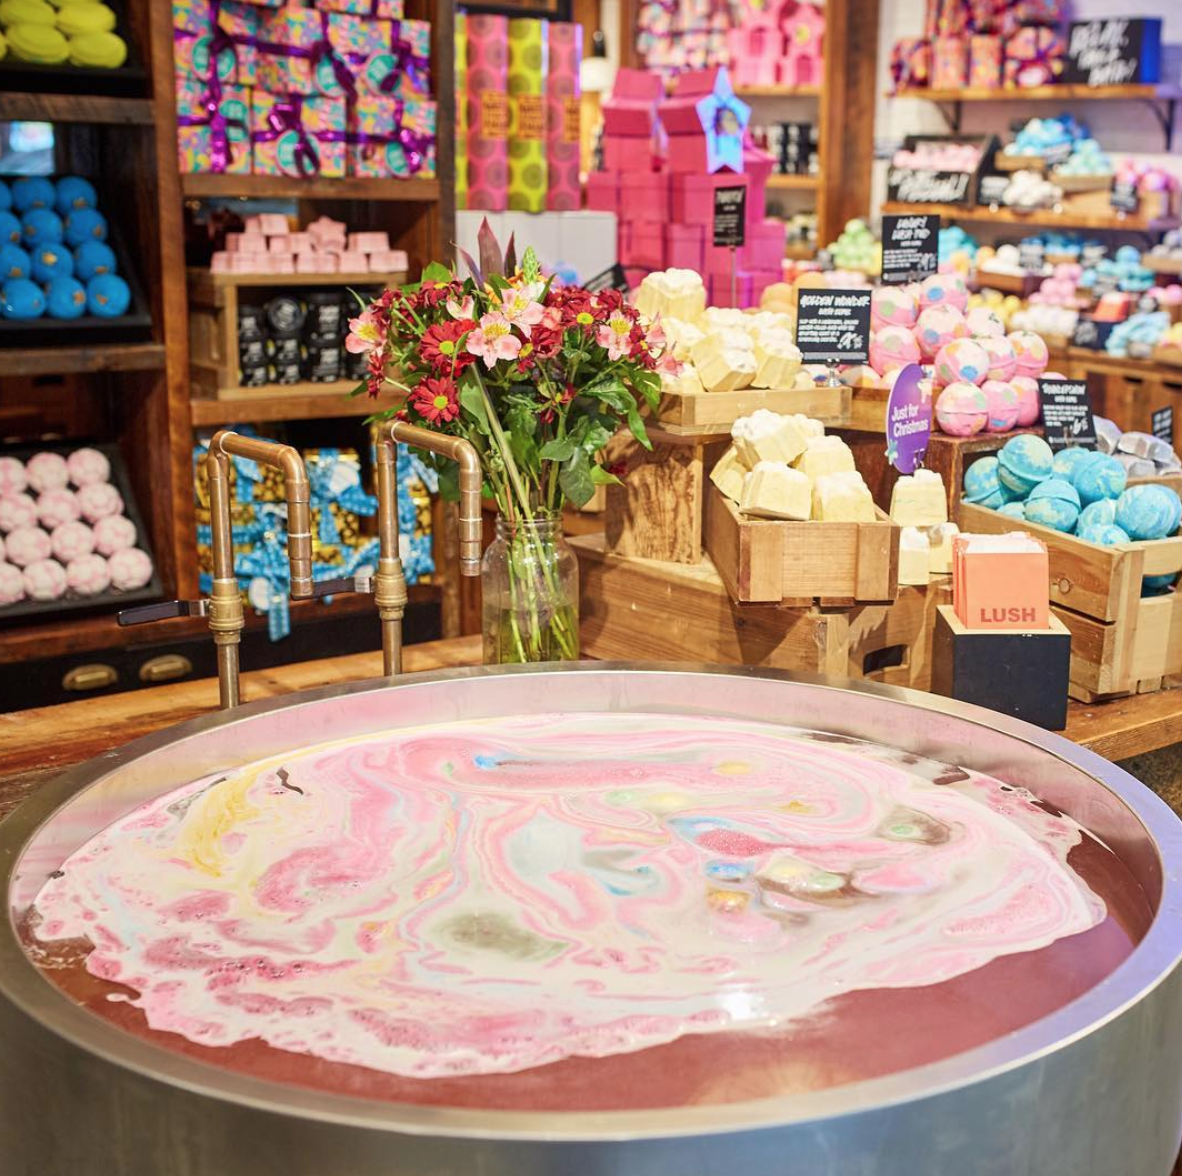 *IMAGE FROM LUSH'S INSTAGRAM